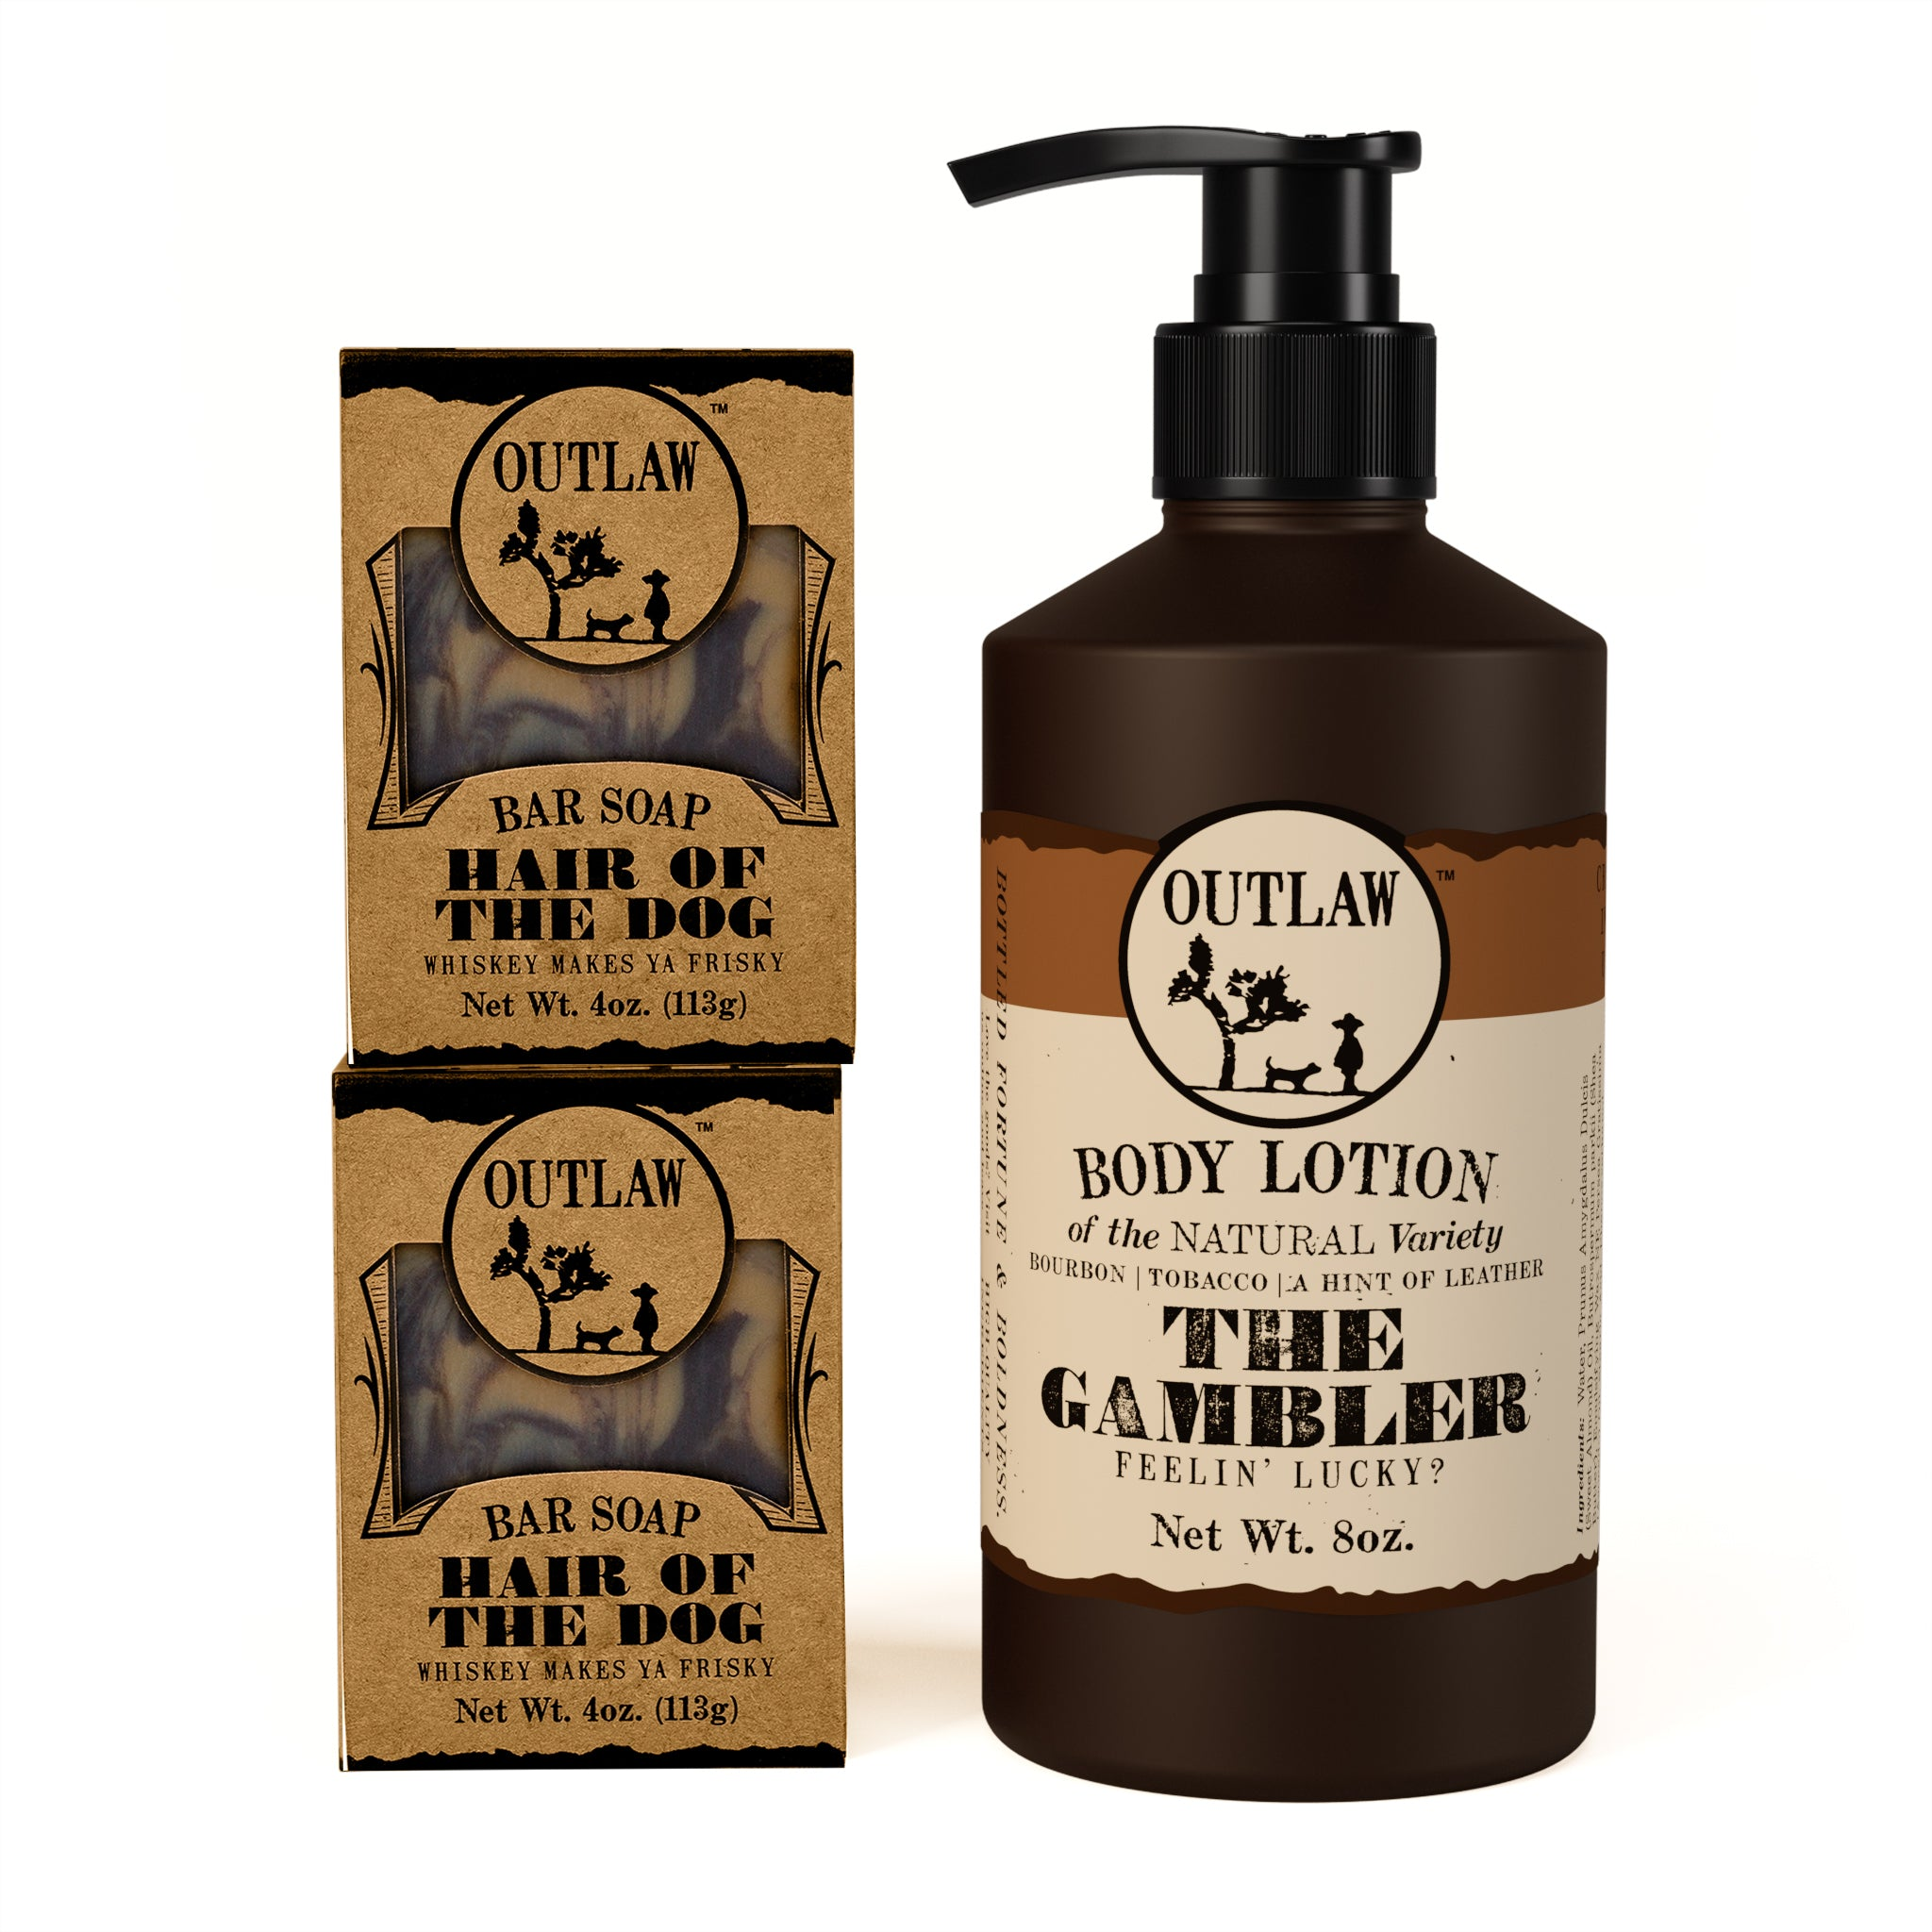 Double Down Essential Gambler and Hair of the Dog Whiskey Soap and Lotion Subscription Box - Free shipping! Subscription Get what you want at the frequency you need.